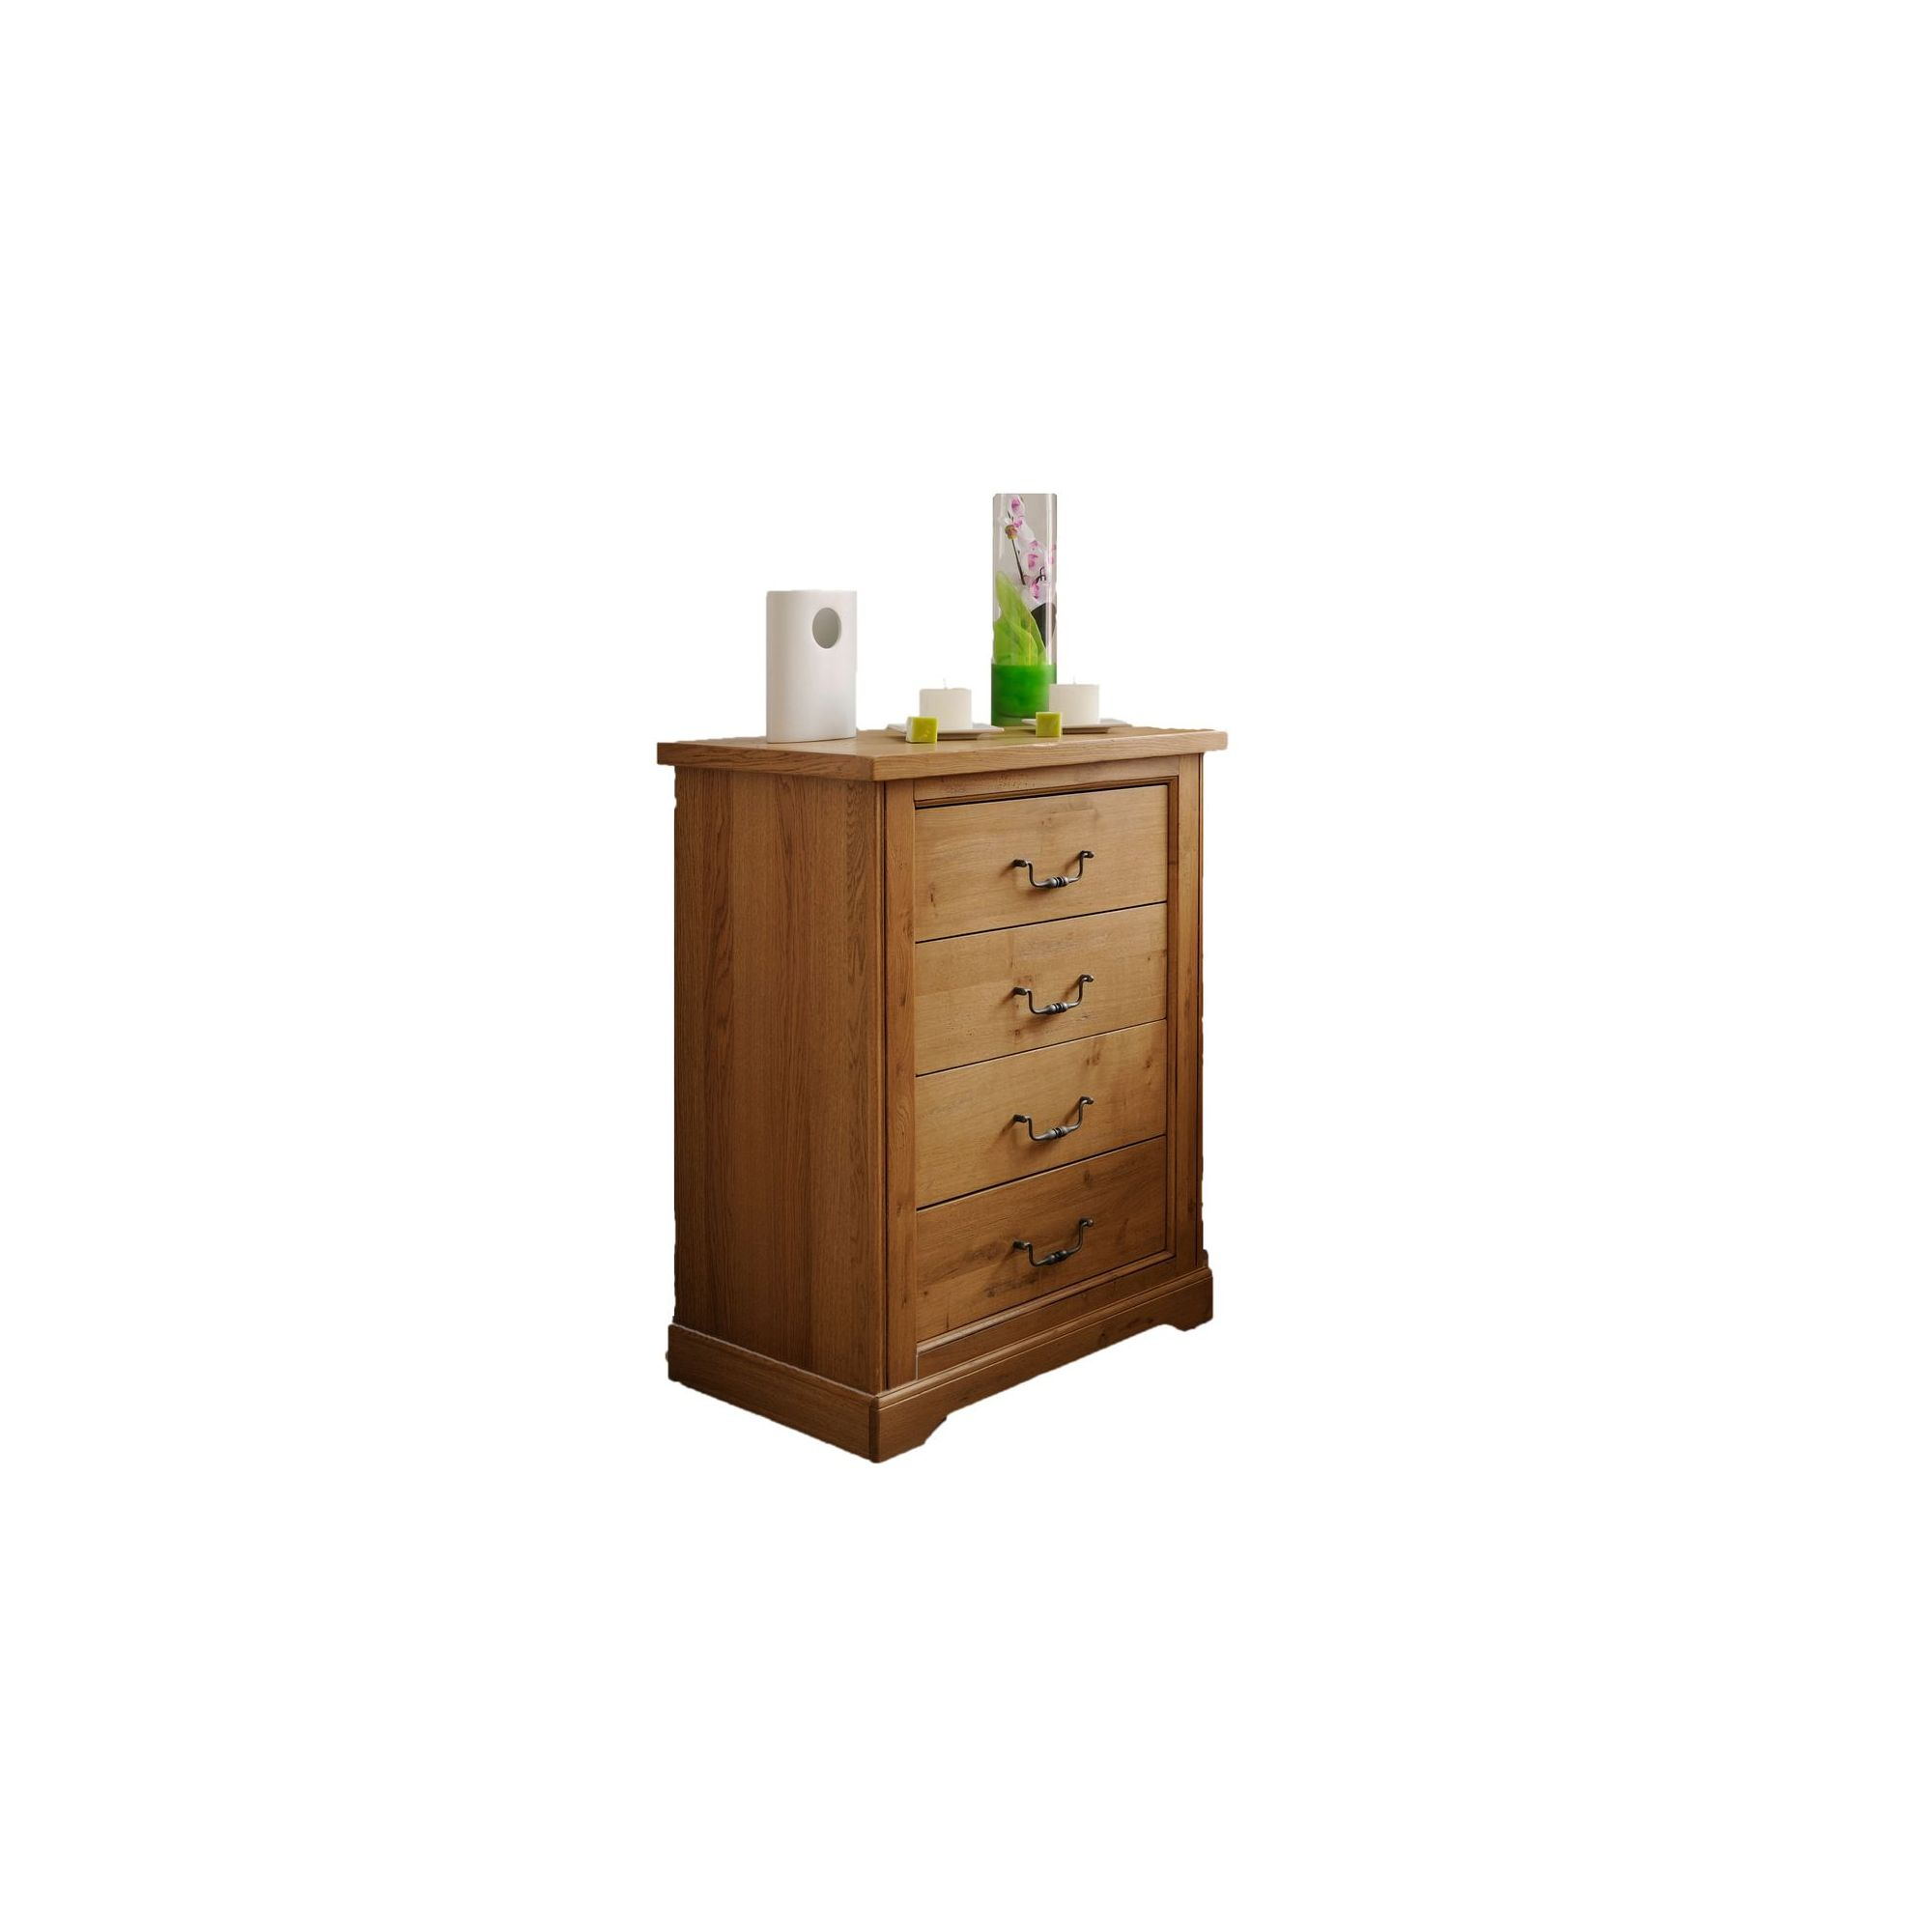 Parisot Artisane 4 Drawer Chest at Tescos Direct